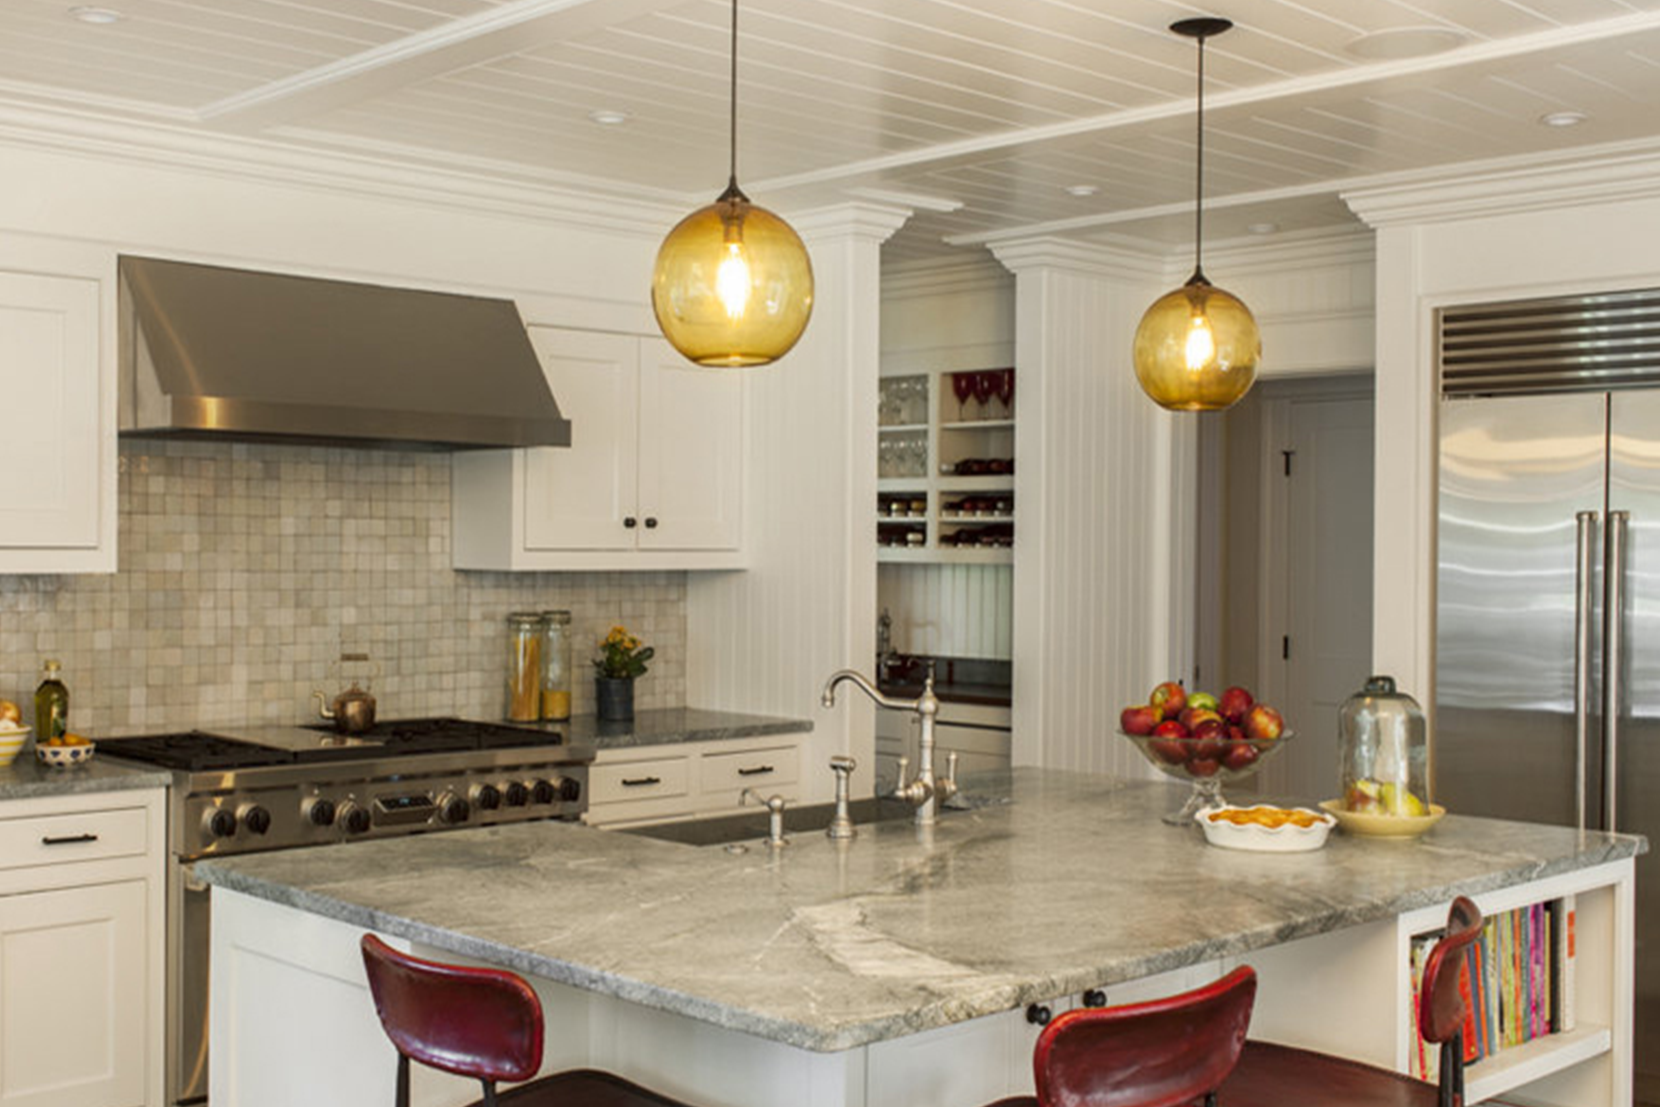 Lighting-Project-Pages_0007s_0006_Kitchen-Modern-Pendant-Lighting-Amber.png